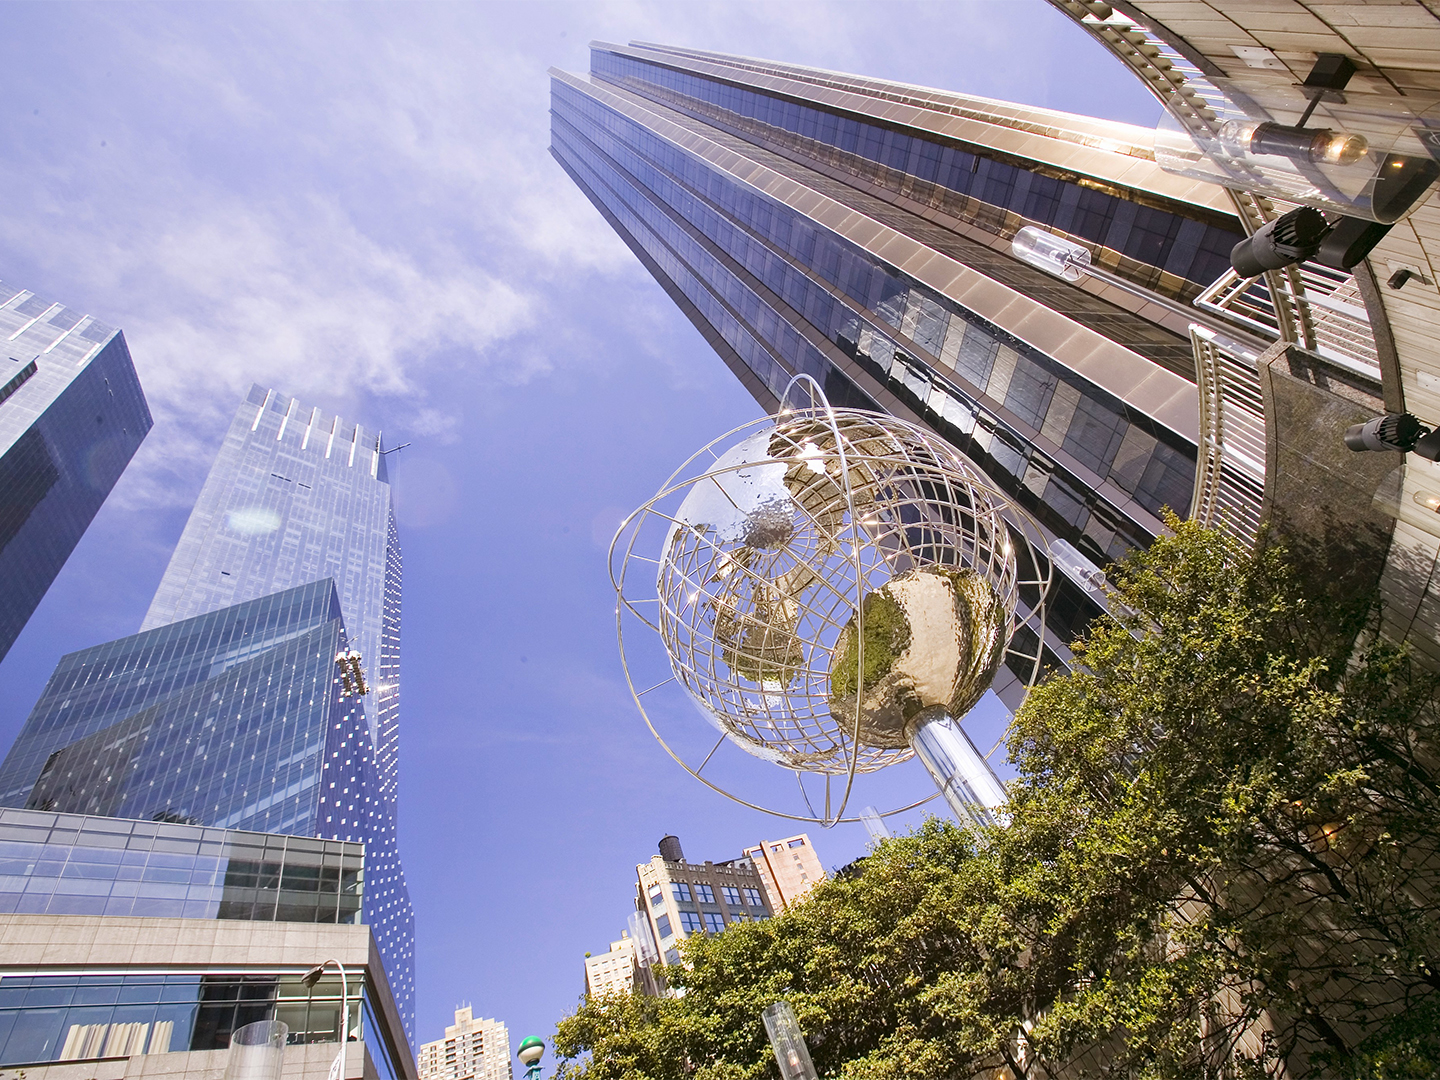 City buildings and globe statue